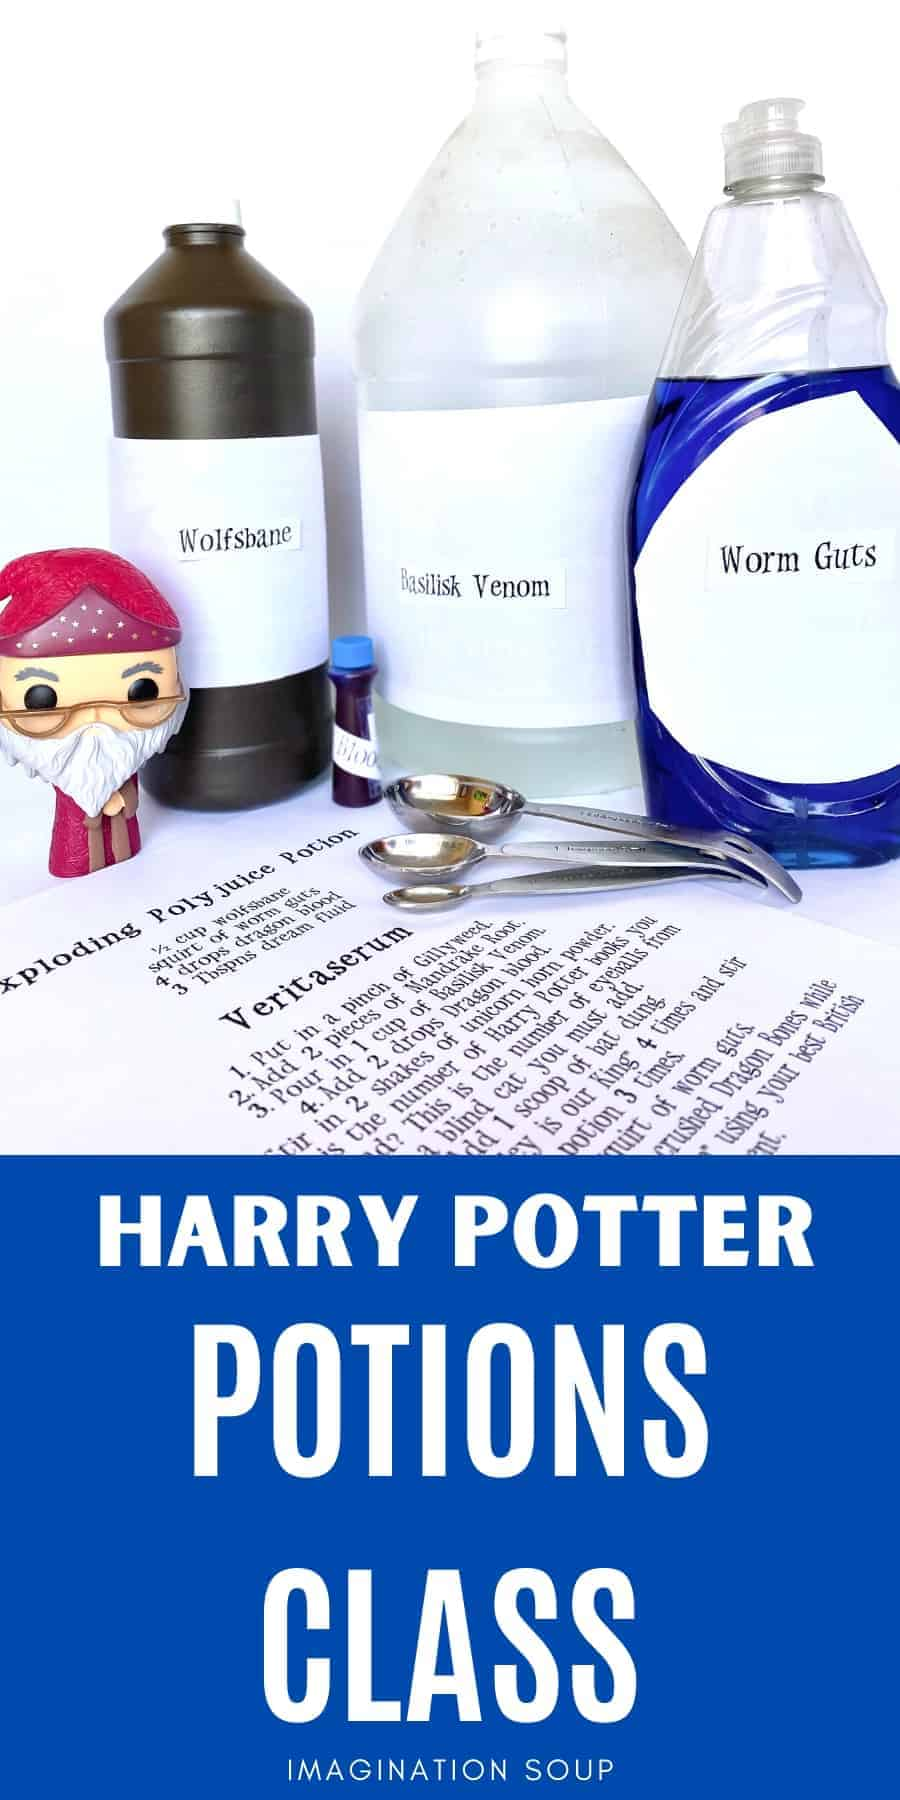 awesome Harry Potter potions class experiments for birthday parties and science classes